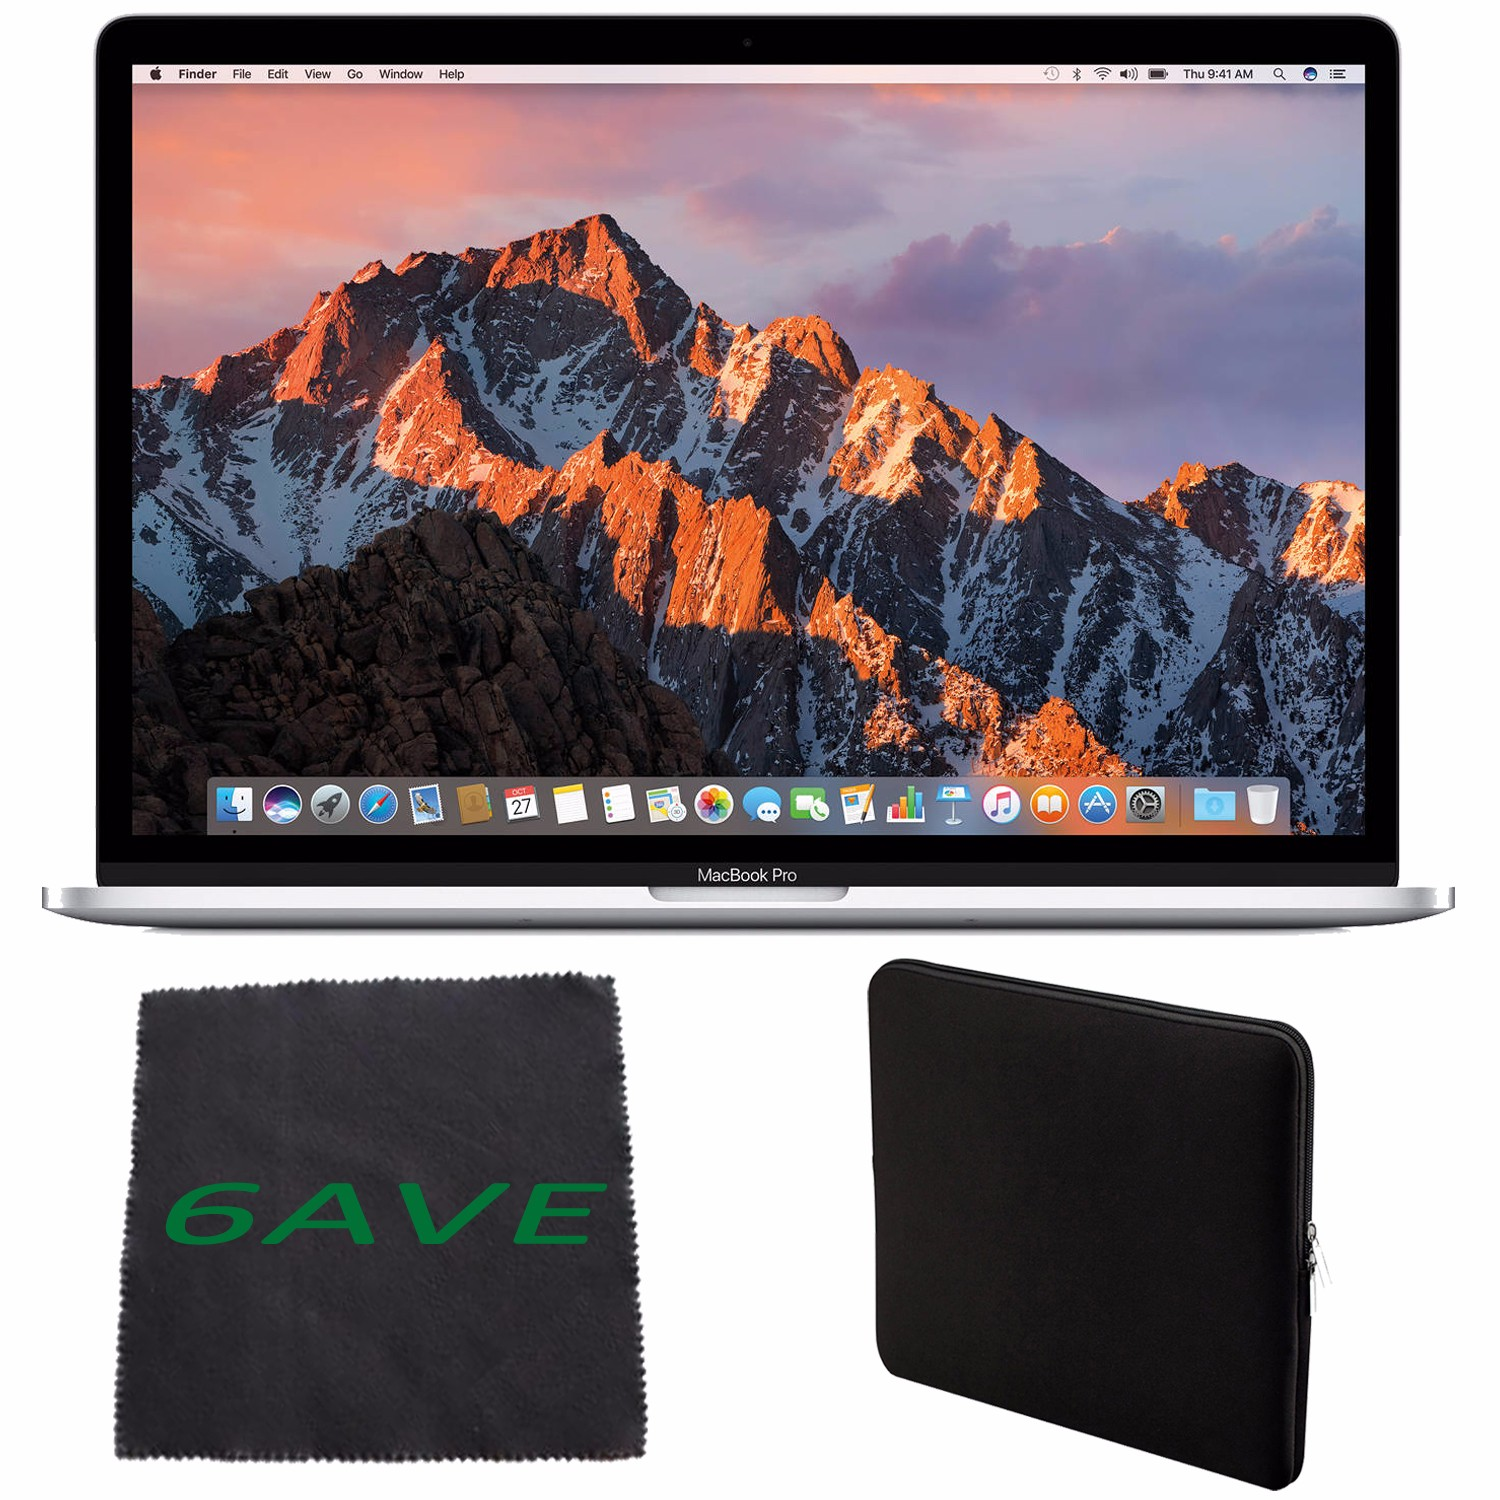 Apple MacBook Pro MLW82LL/A 15.4-inch Laptop with Touch Bar (2.7GHz quad-core Intel Core i7, 512GB Retina Display), Silver + Padded Case For Macbook + MicroFiber Cloth Bundle